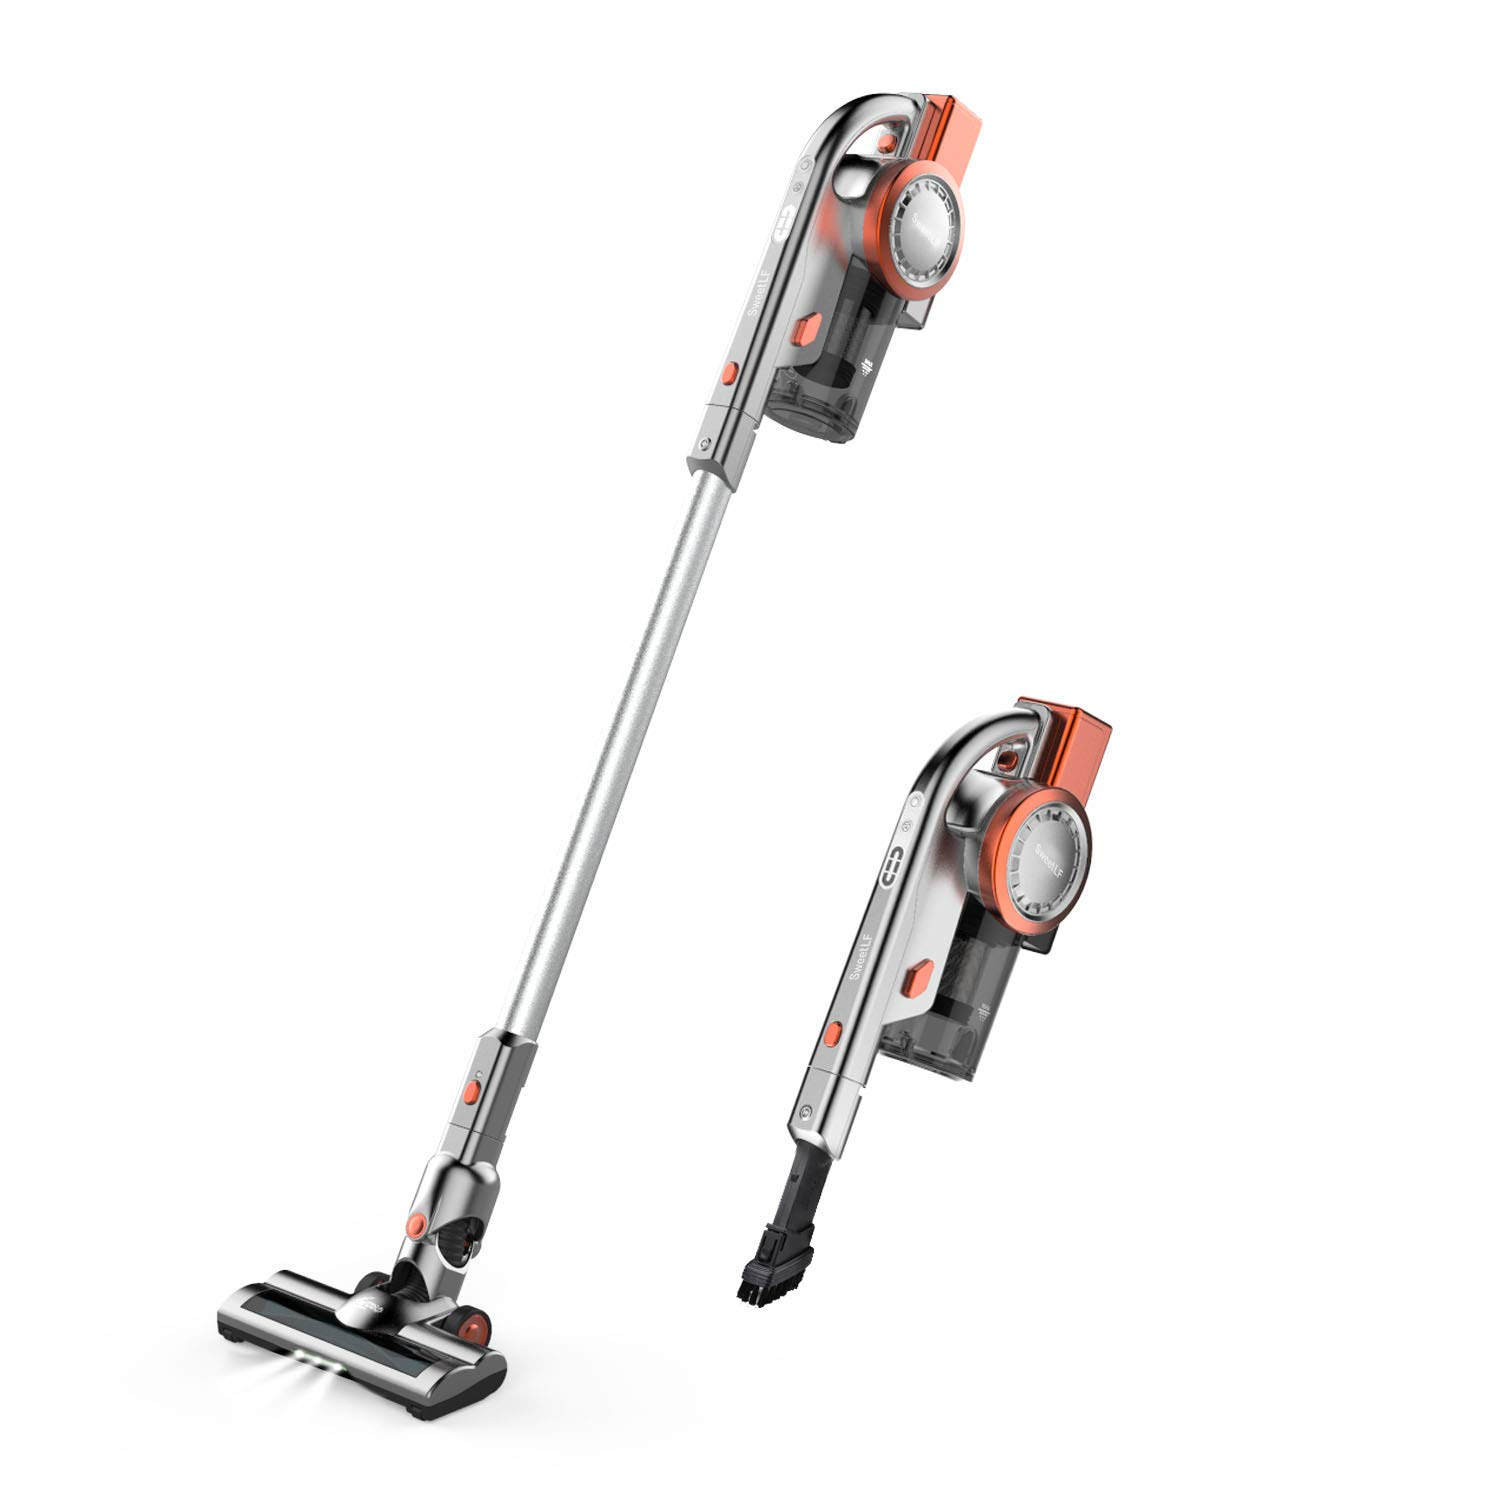 Cordless Vacuum Cleaner, 2 in 1 Stick and Handheld Vacuum Cleaner Lightweight Bagless Vacuum with 10Kpa Powerful Suction, LED Brush and Wall-Mount by E-rising